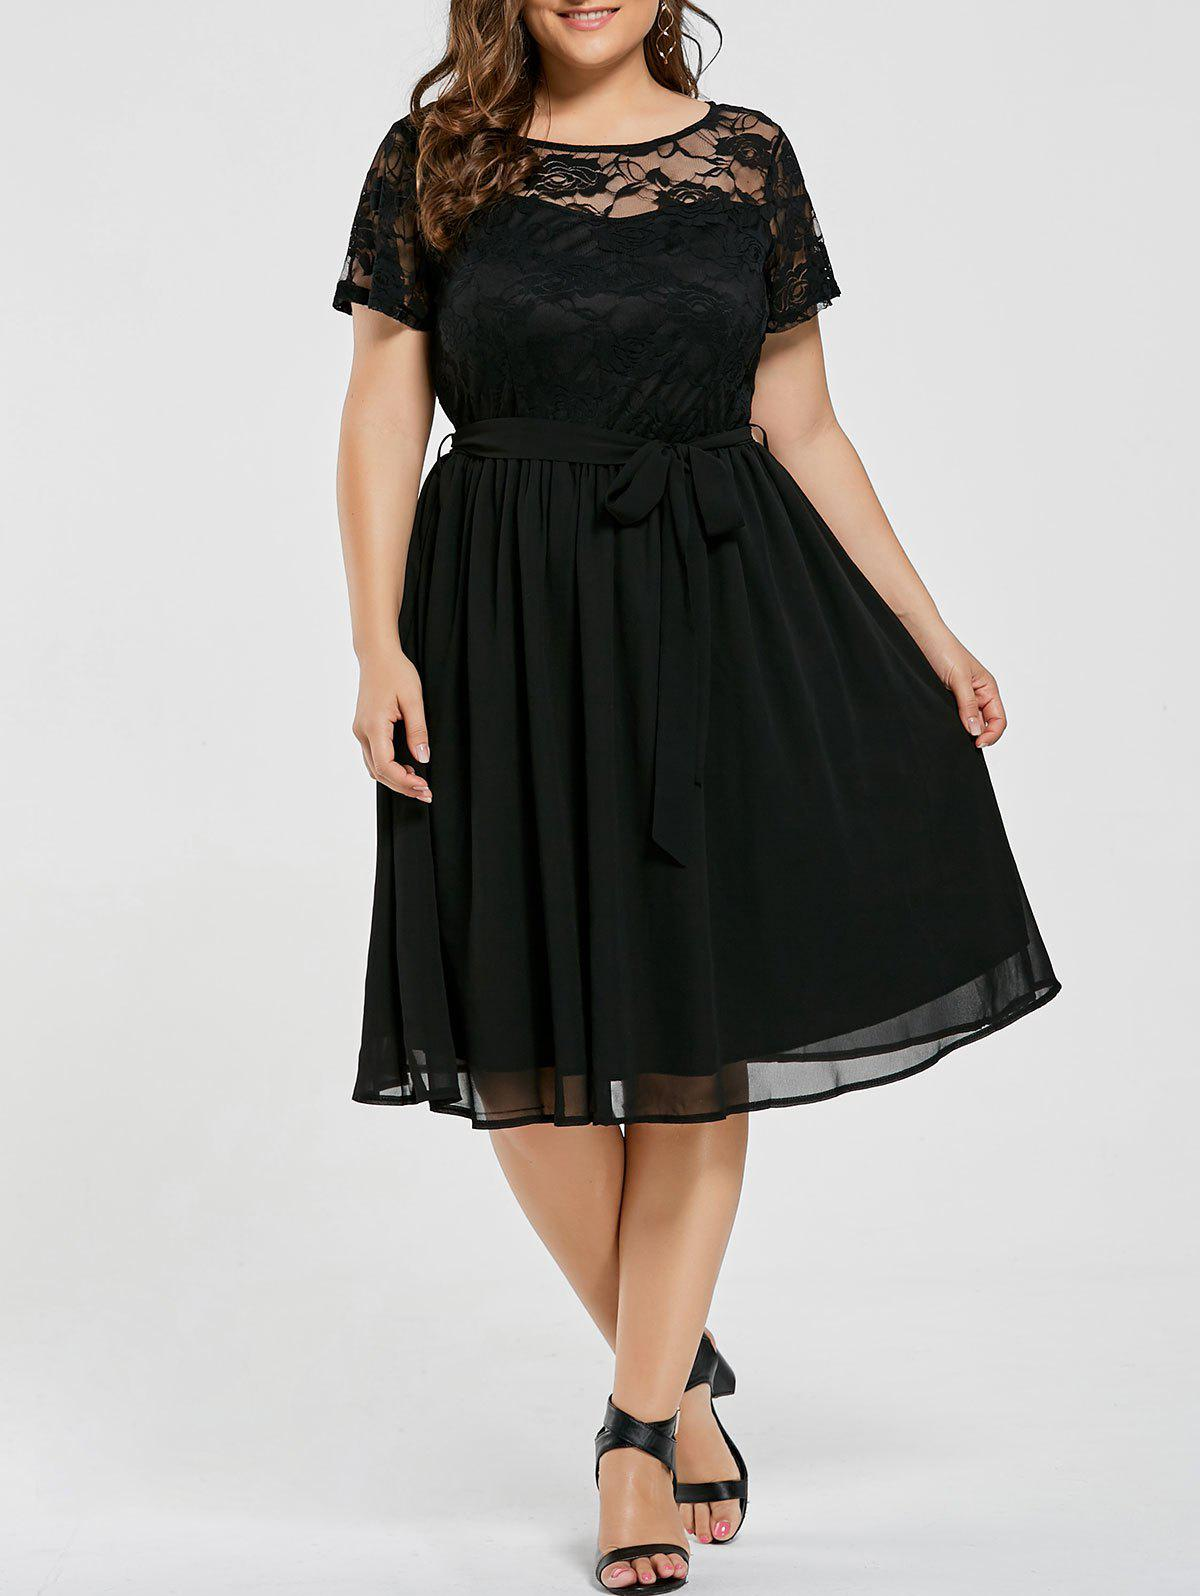 Plus Size Overlay Lace Panel DressWOMEN<br><br>Size: 9XL; Color: BLACK; Style: Casual; Material: Cotton,Polyester; Silhouette: A-Line; Dresses Length: Knee-Length; Neckline: Round Collar; Sleeve Length: Short Sleeves; Embellishment: Lace; Pattern Type: Solid; With Belt: No; Season: Fall,Summer; Weight: 0.3500kg; Package Contents: 1 x Dress;